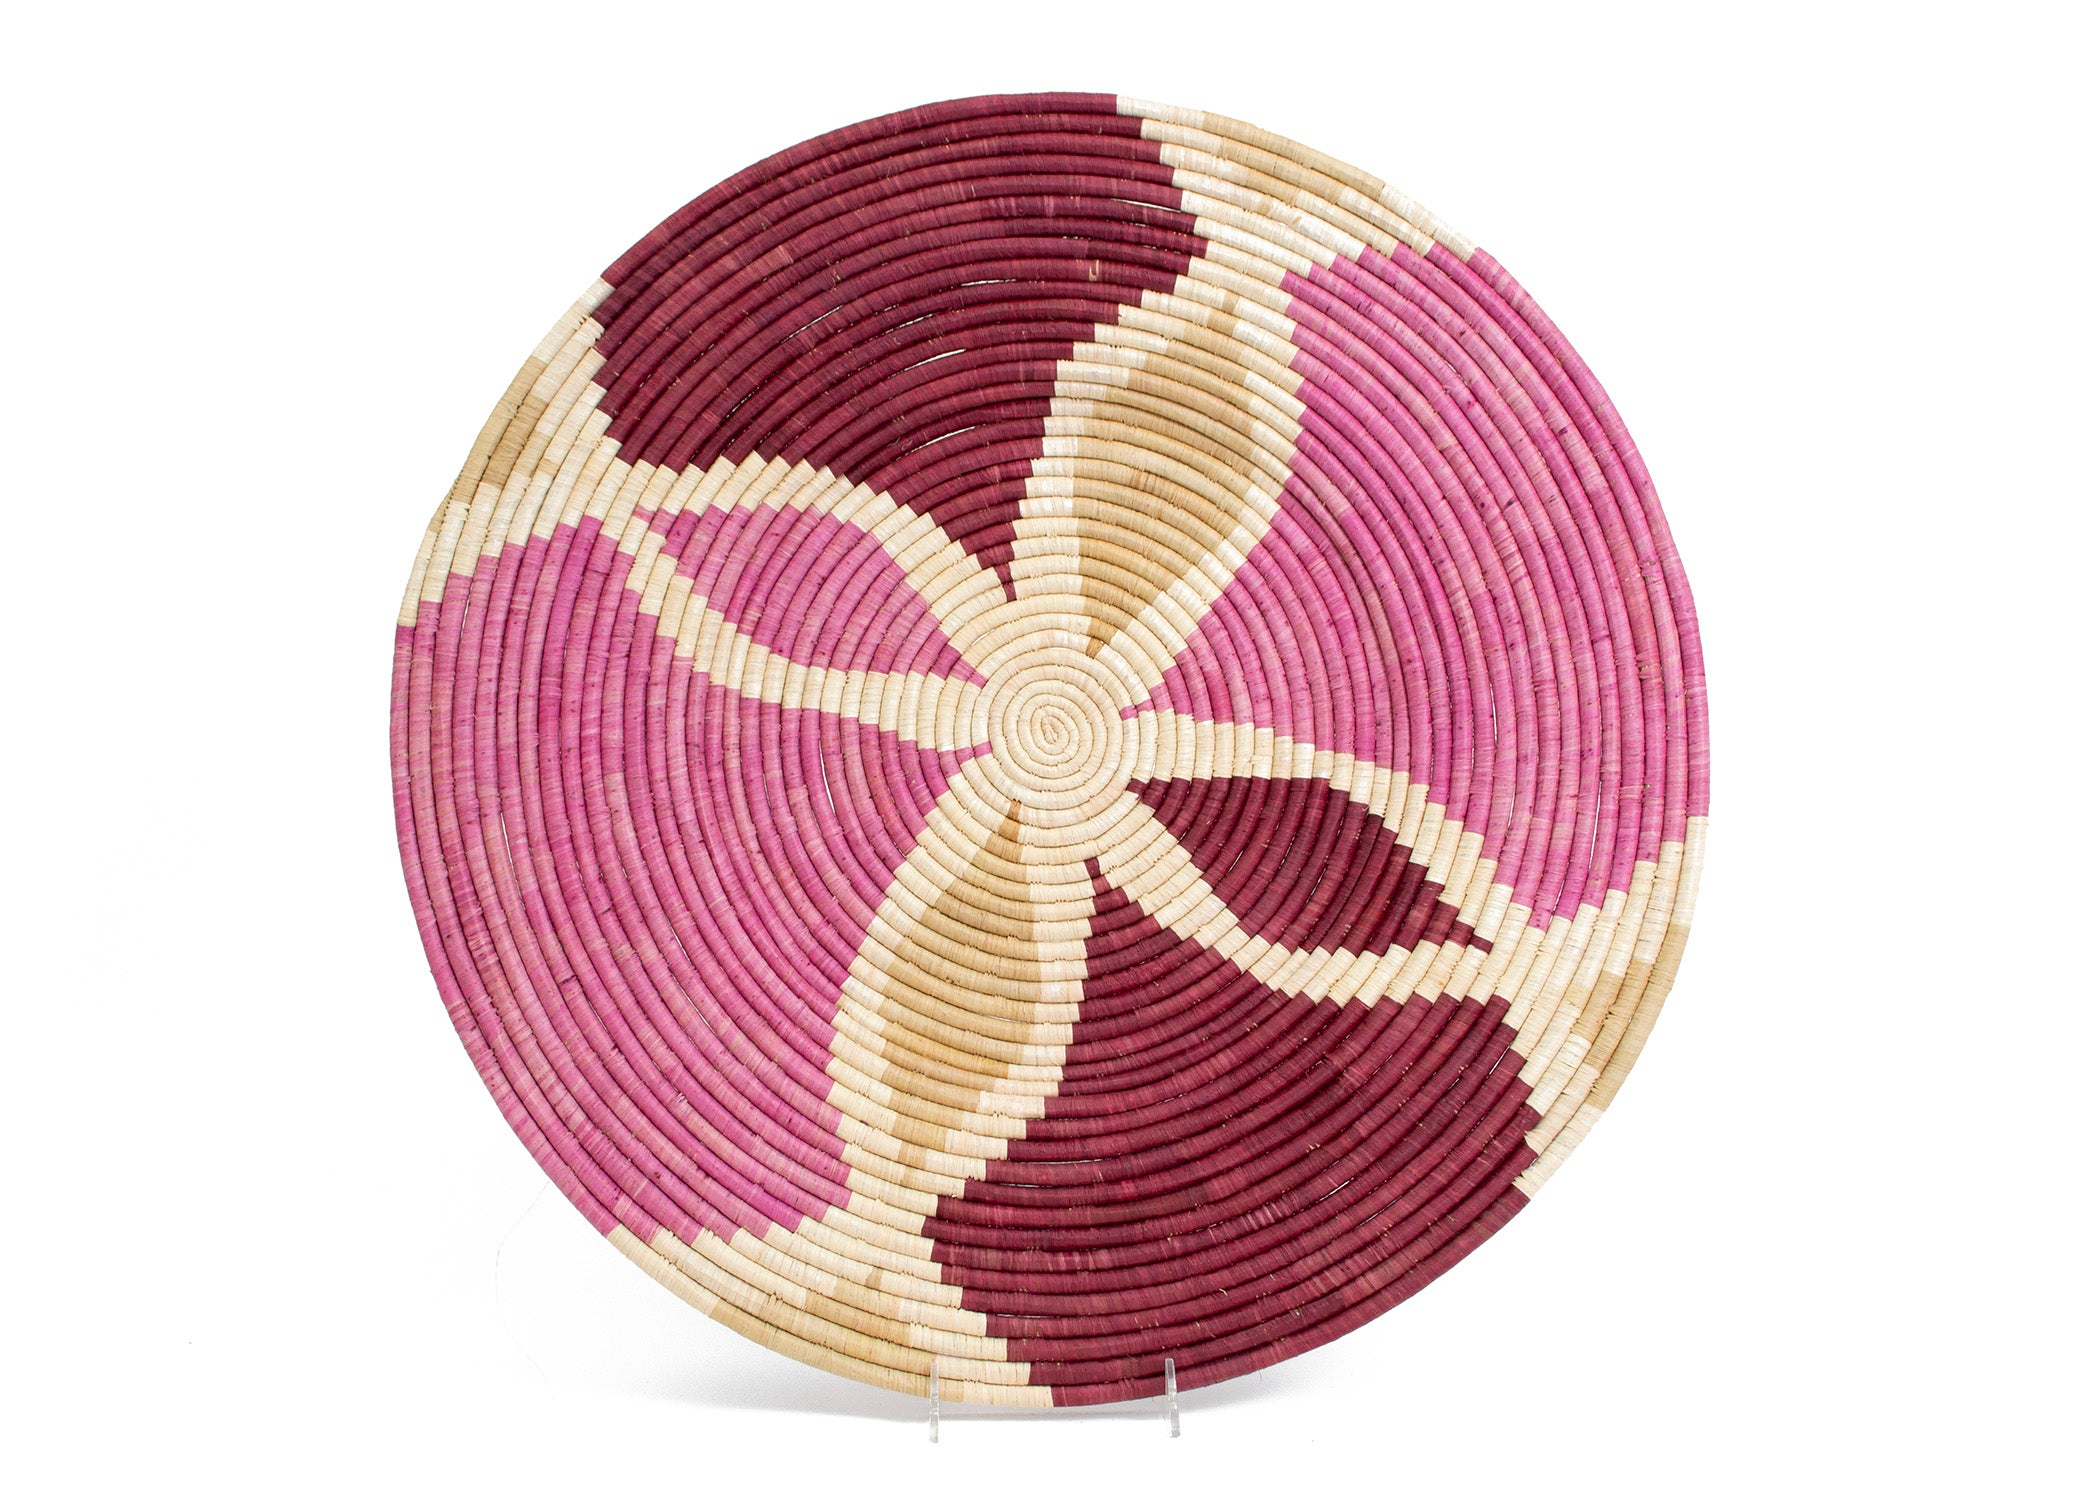 Rosette Color Blocked Extra Large Raffia Plate - KAZI - Artisan made high quality home decor and wall art